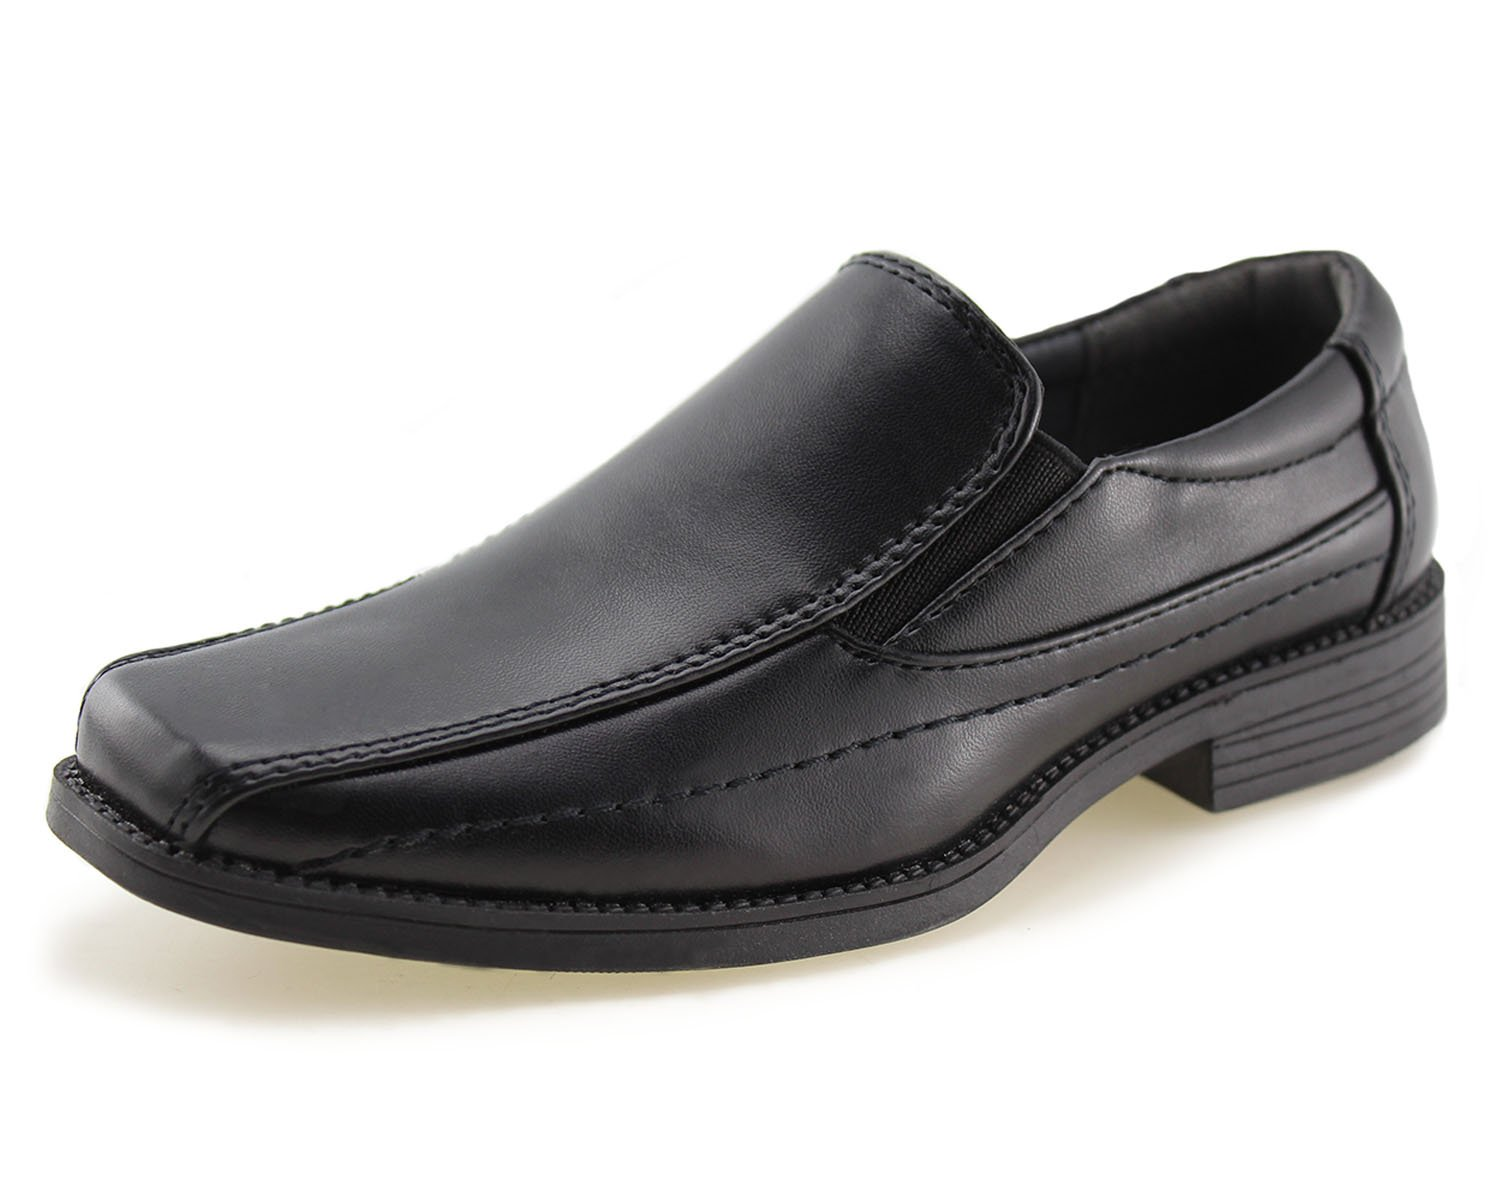 Kids School Uniform Dress Shoes Slip-on Oxford (Toddler/Little Kid)